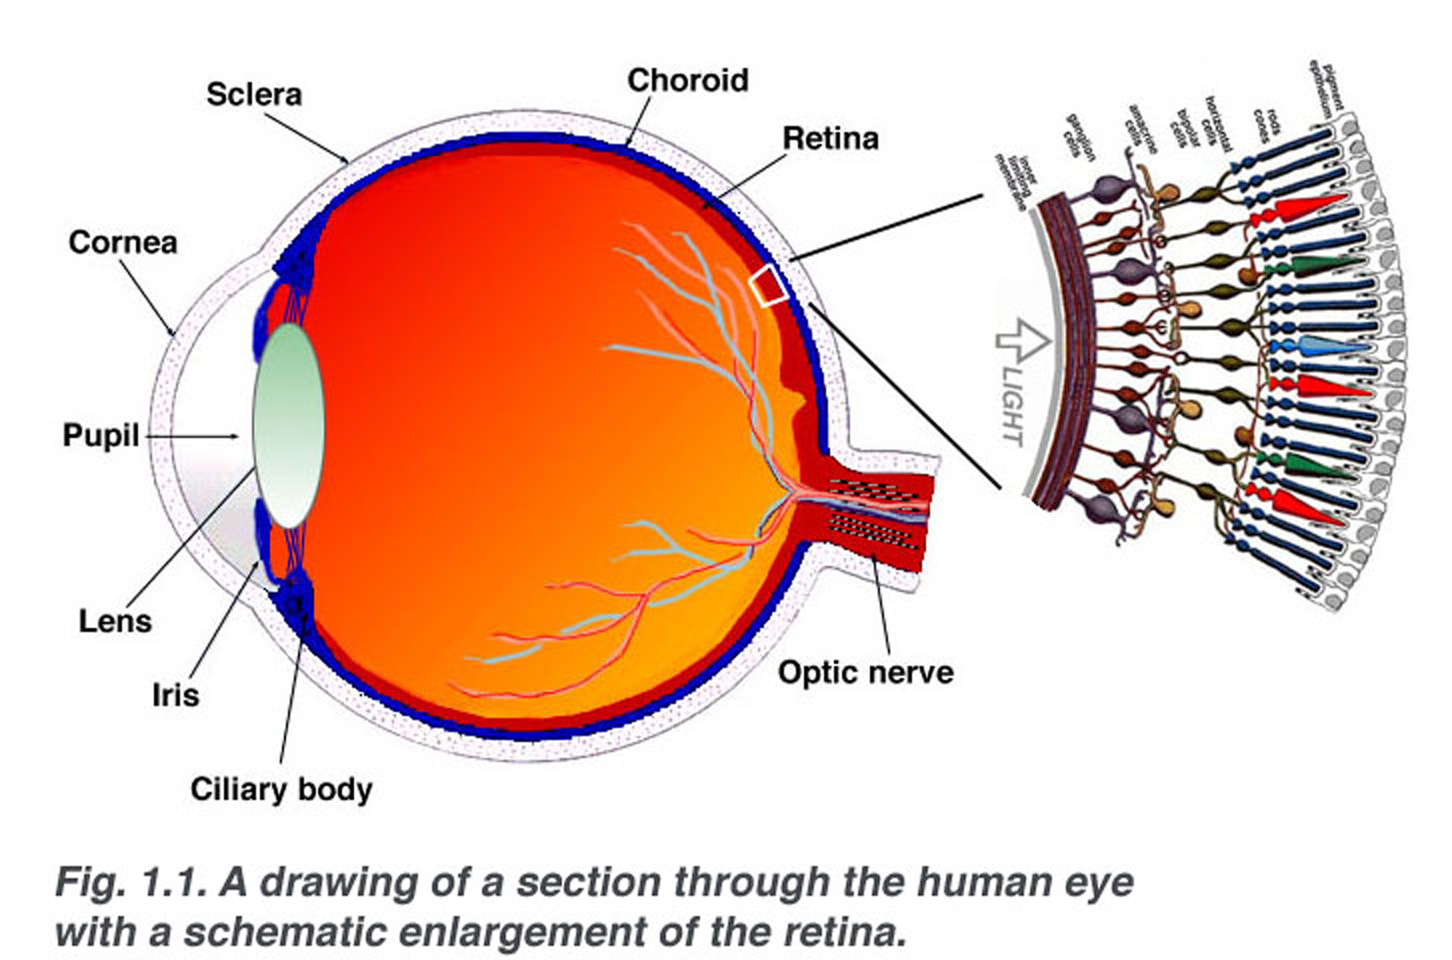 hight resolution of a schematic section through the human eye with a schematic enlargement of the retina